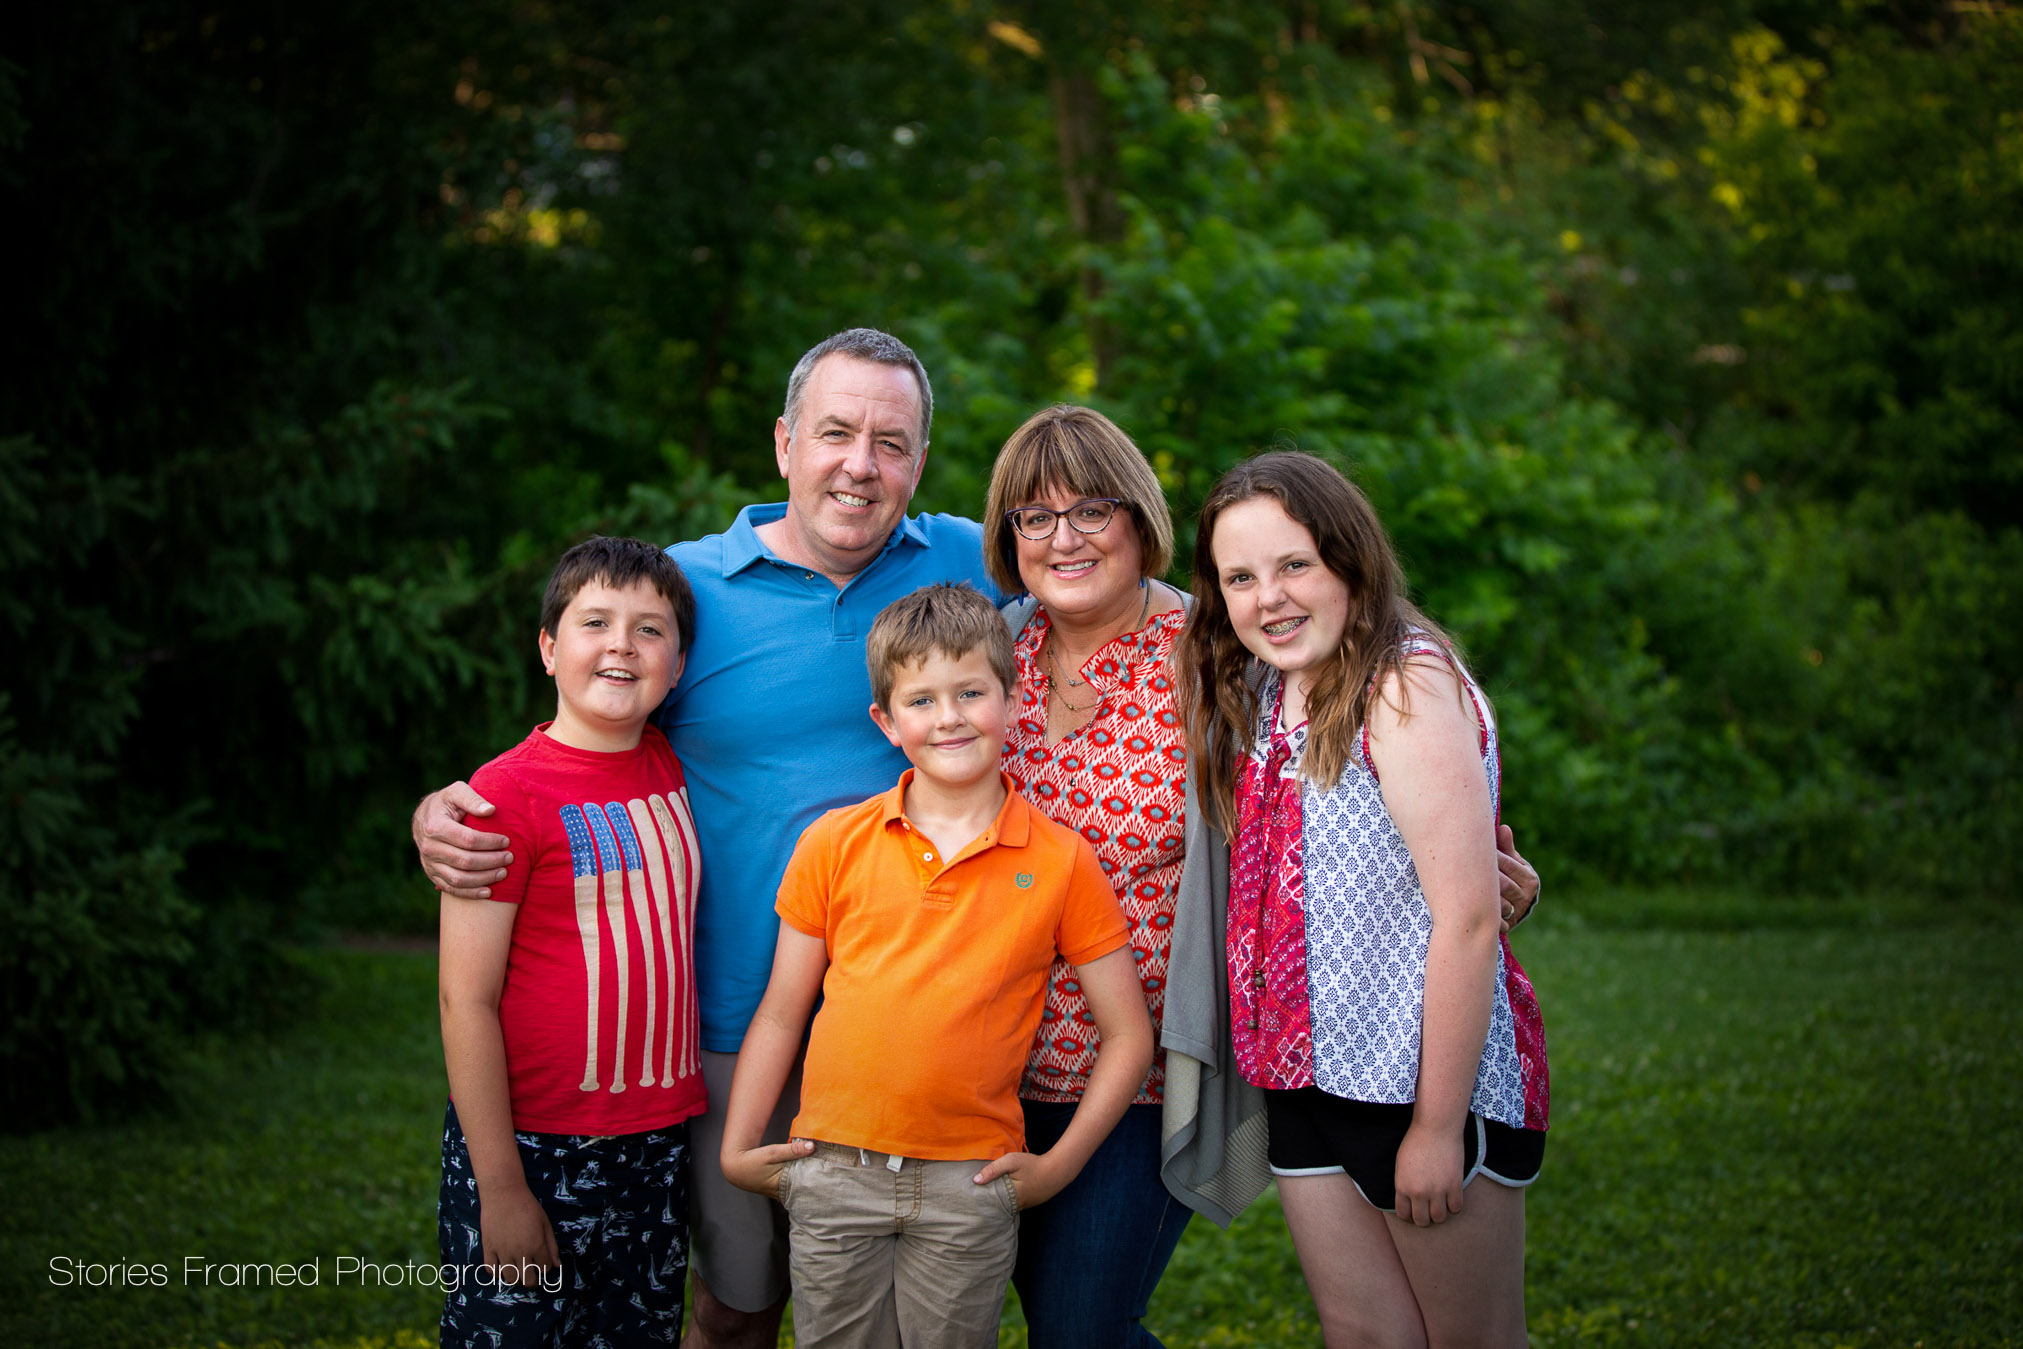 I love using my photography to capture families how they really are!